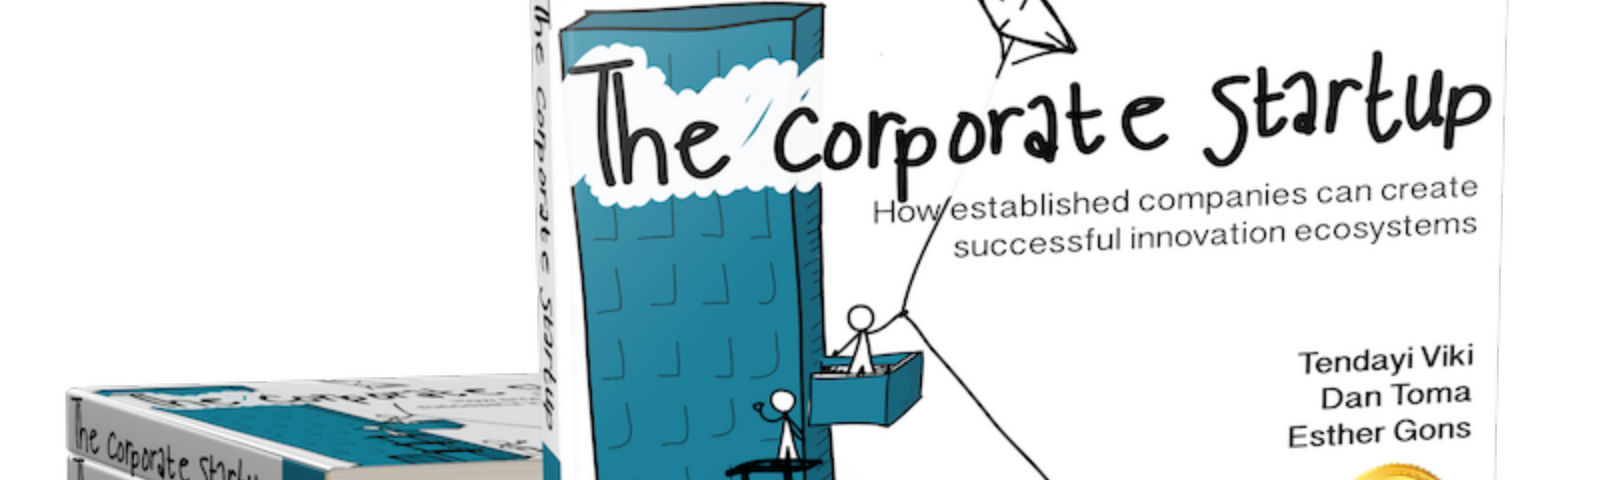 the corporate startup how established companies can develop successful innovation ecosystems